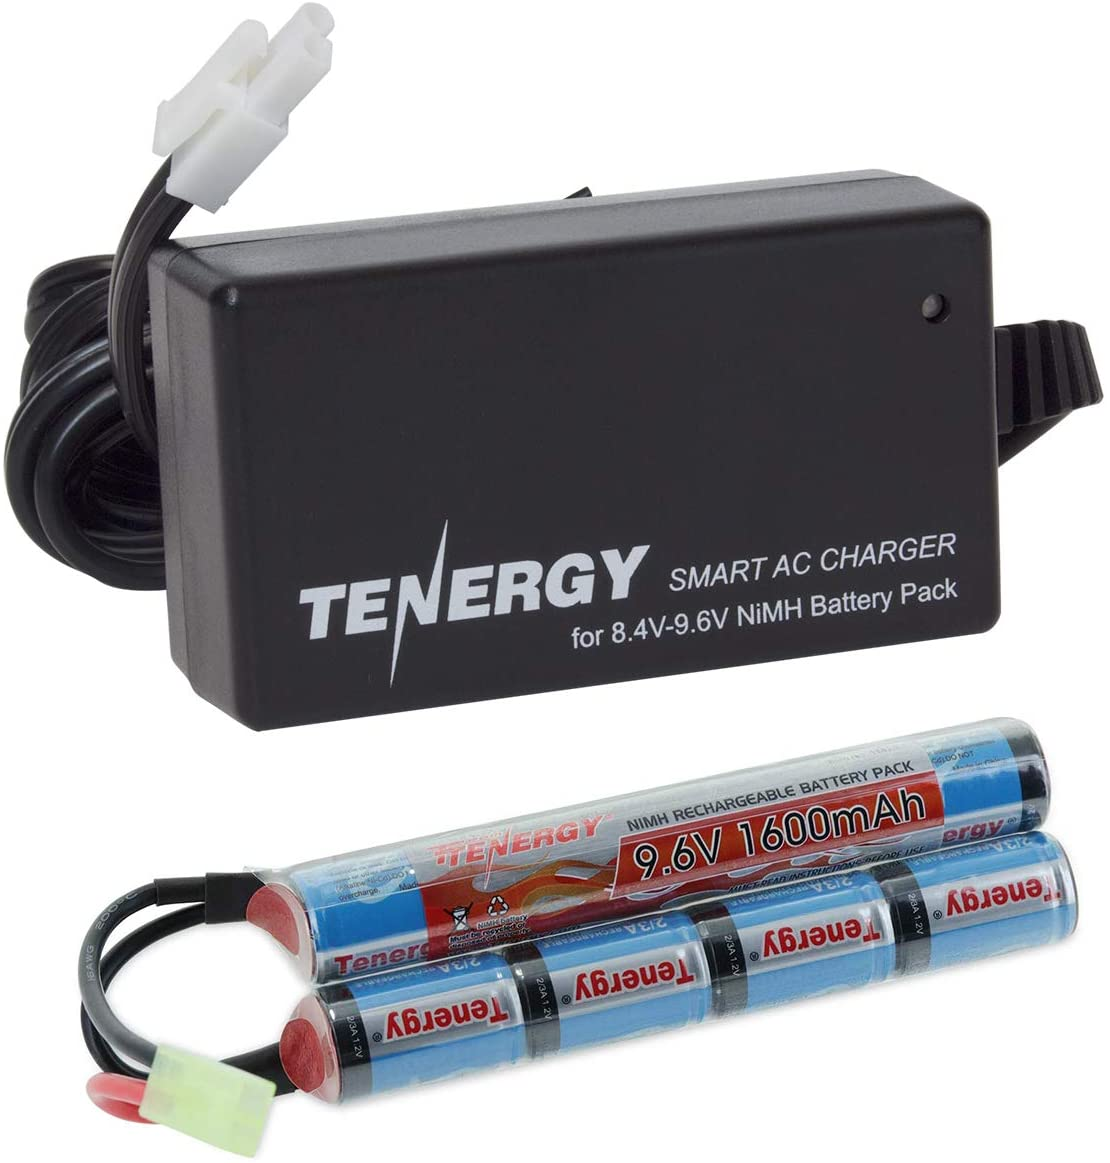 Tenergy 9.6V Airsoft Battery 1600mAh NiMH Nunchuck Battery w/Mini Tamiya Connector for Airsoft Guns M4, Crane Stock, M110, SR25, M249, M240B, G36, M14, RPK, PKM, L85, AUG, G3 (Optional Charger)